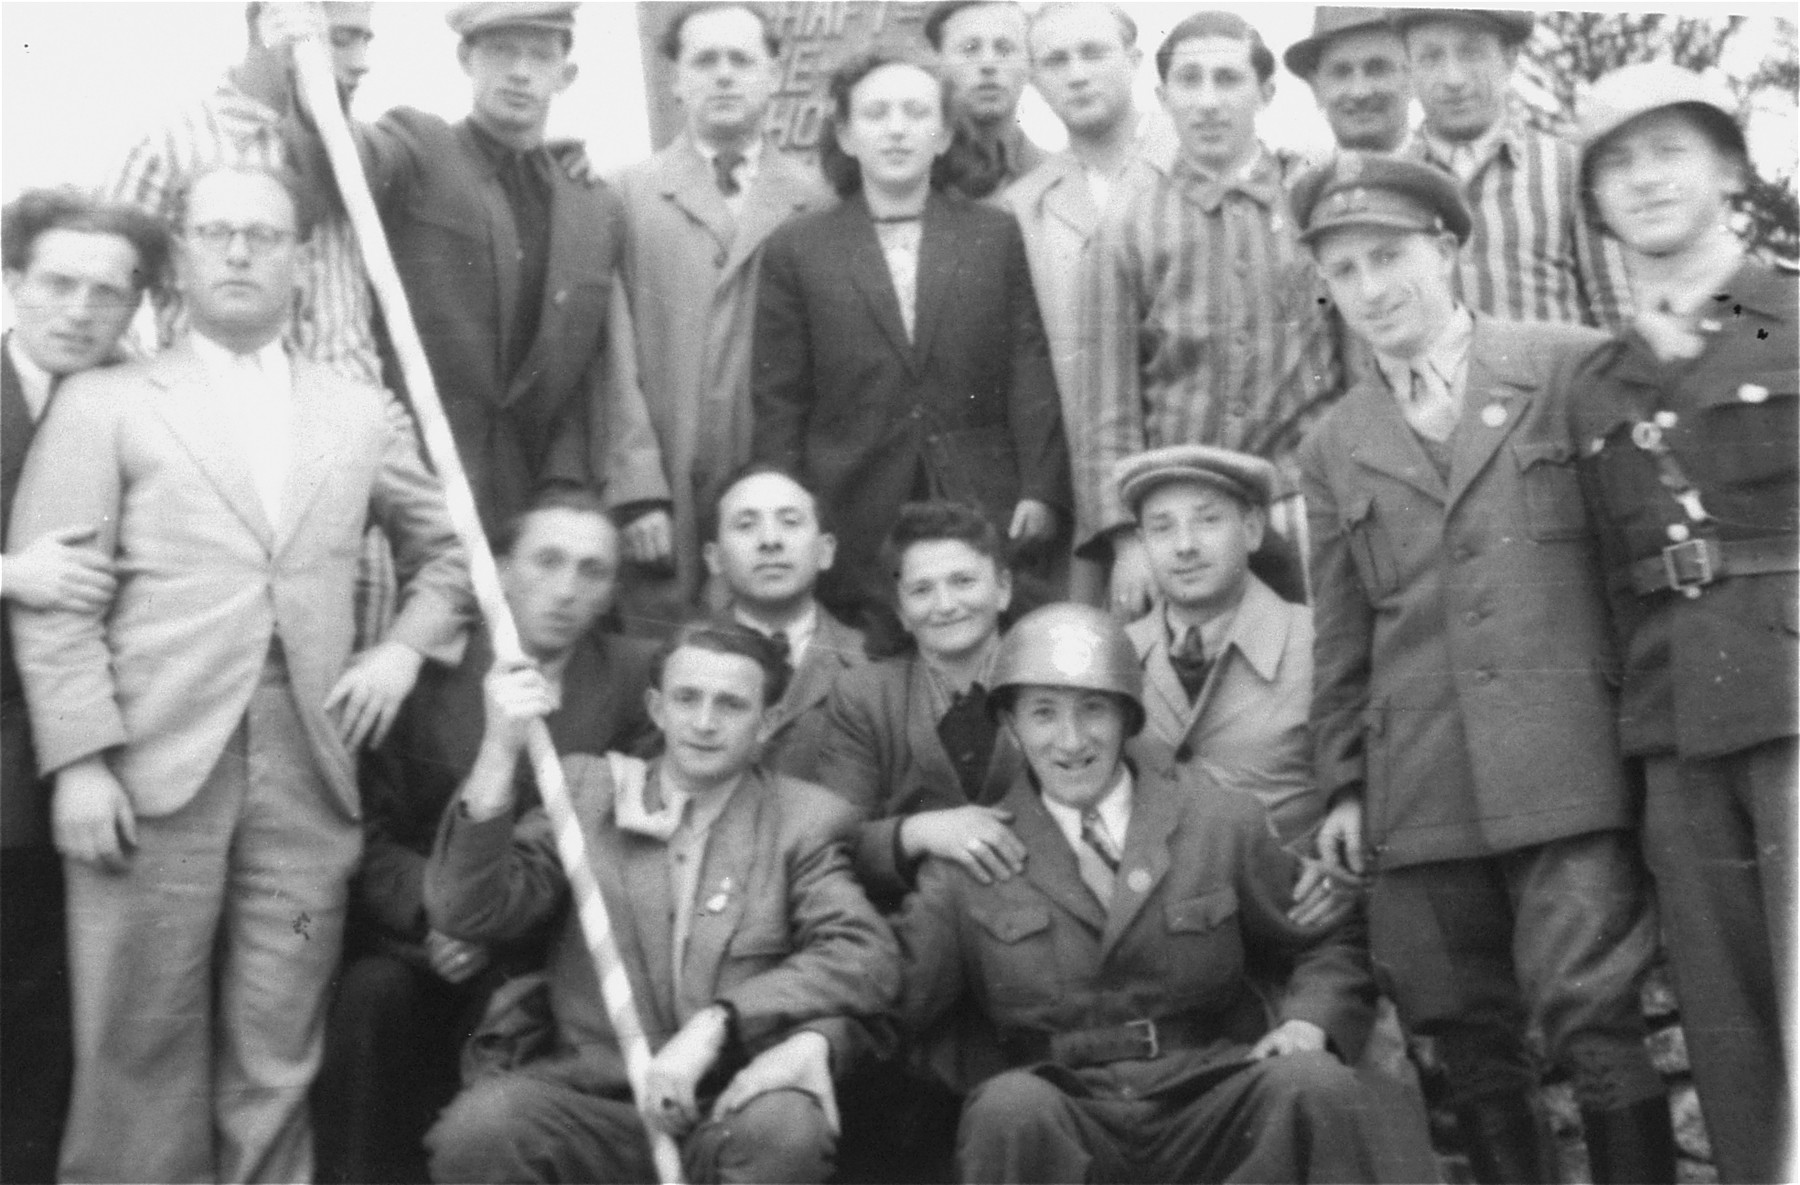 Jewish men, some in concentration camp uniform gather in the Pocking displaced persons camp.   Alexander Contract holds the Israeli flag.